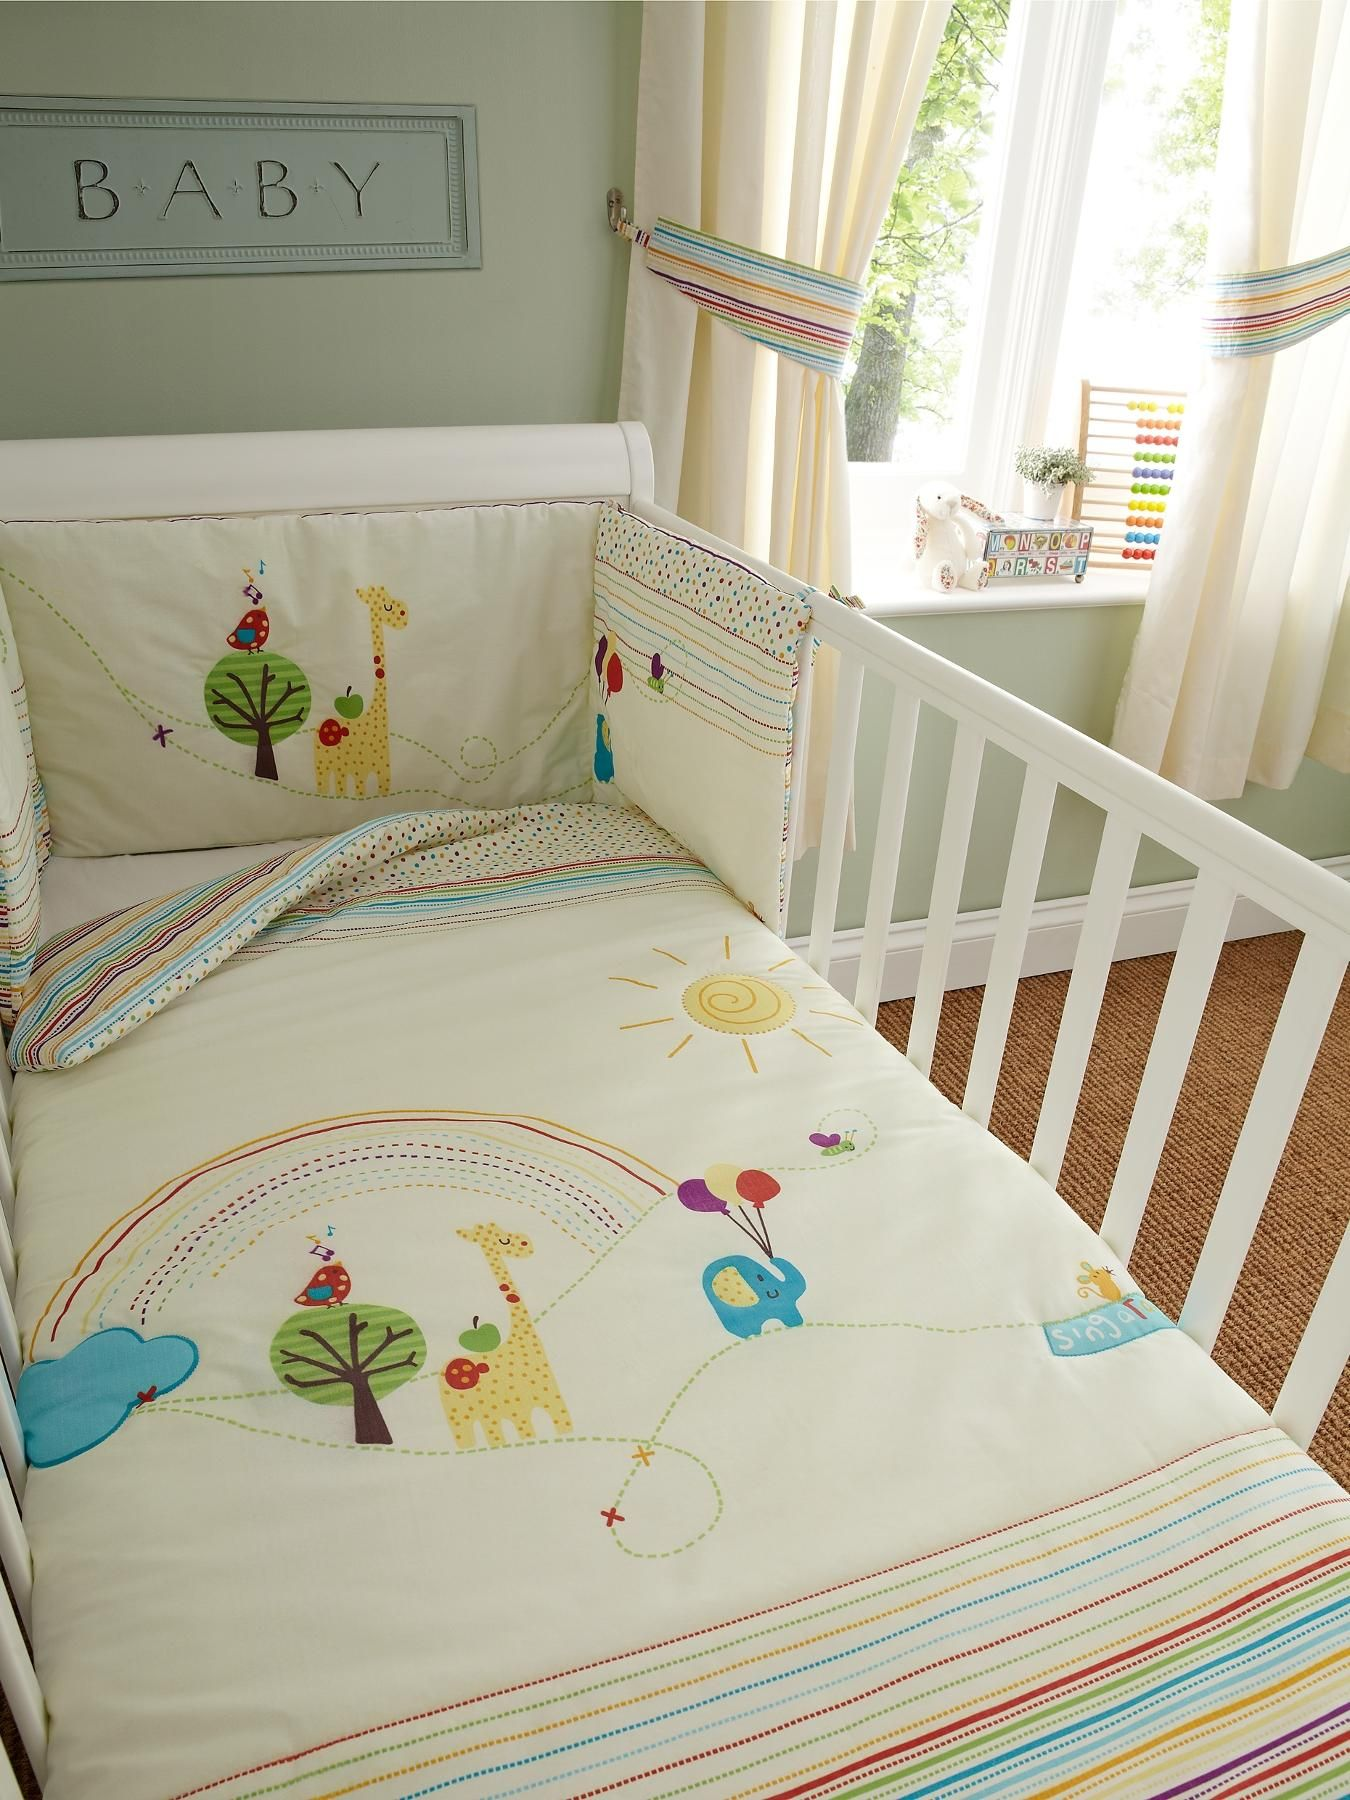 NEW VINTAGE BIRDS WITH GINGHAM backing  CRIB//COT OR COT BED  BEDDING SET